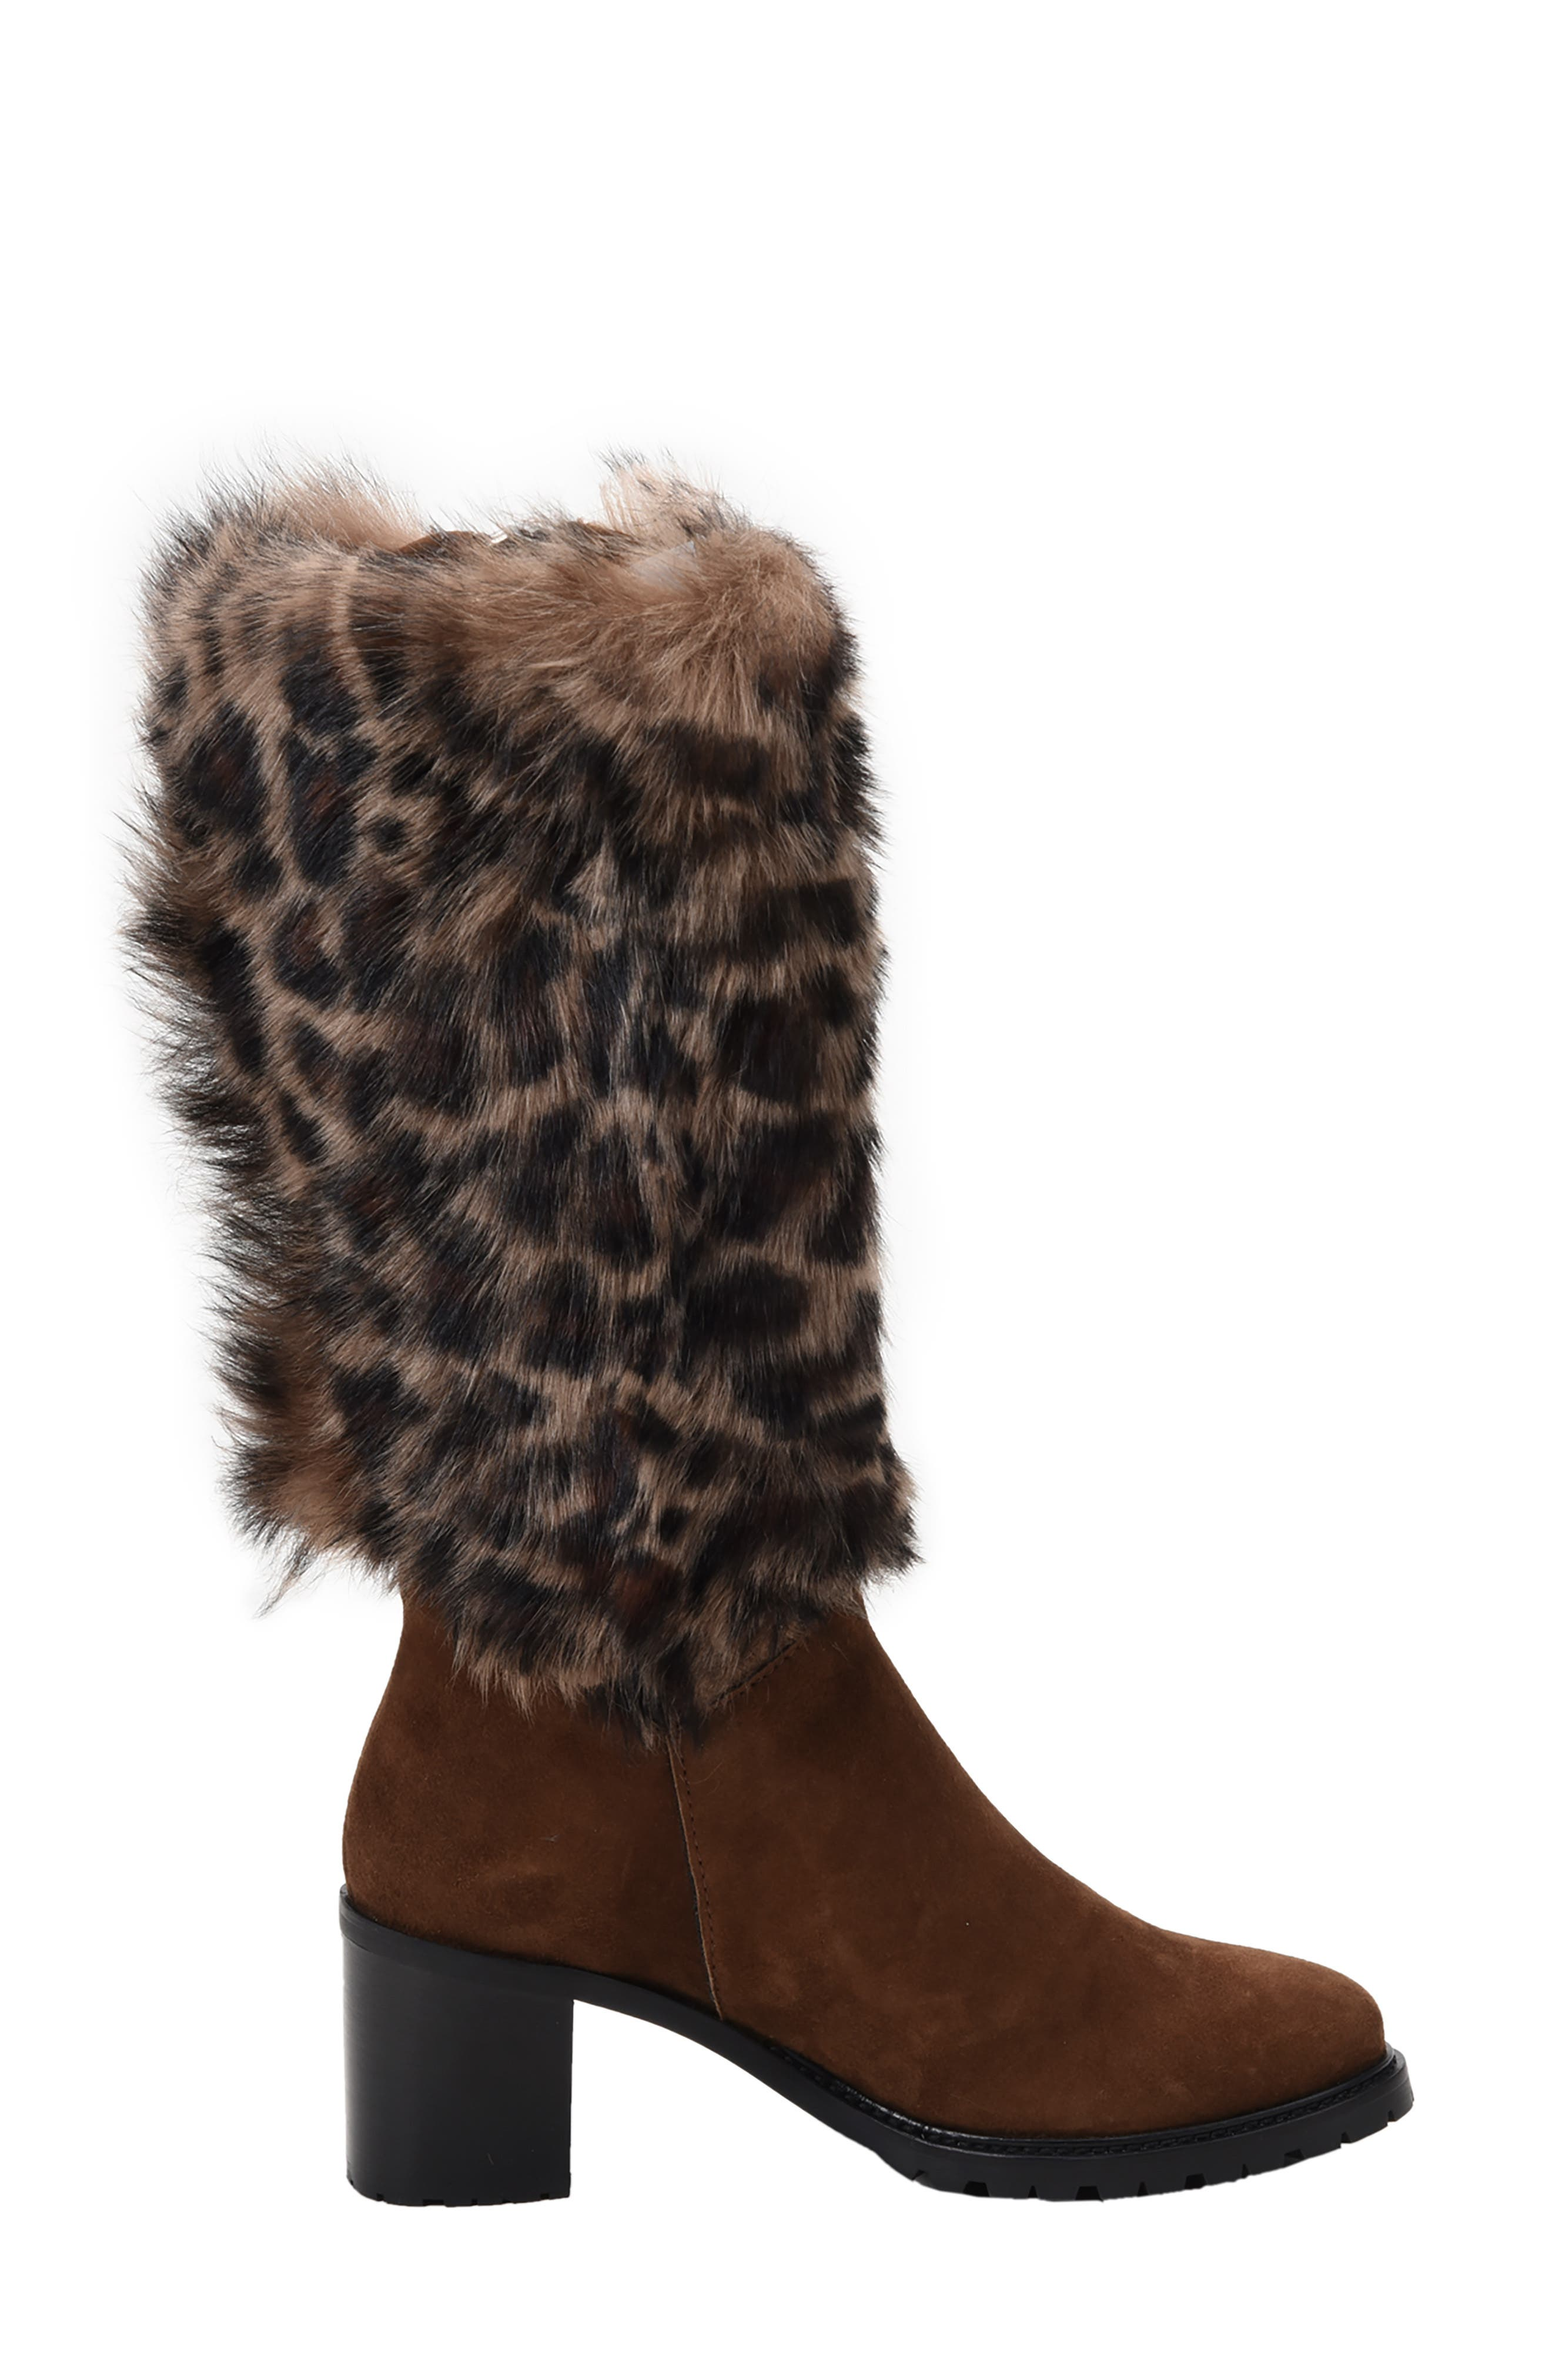 Weatherproof Genuine Shearling Boot,                             Alternate thumbnail 2, color,                             LEOPARD LEATHER